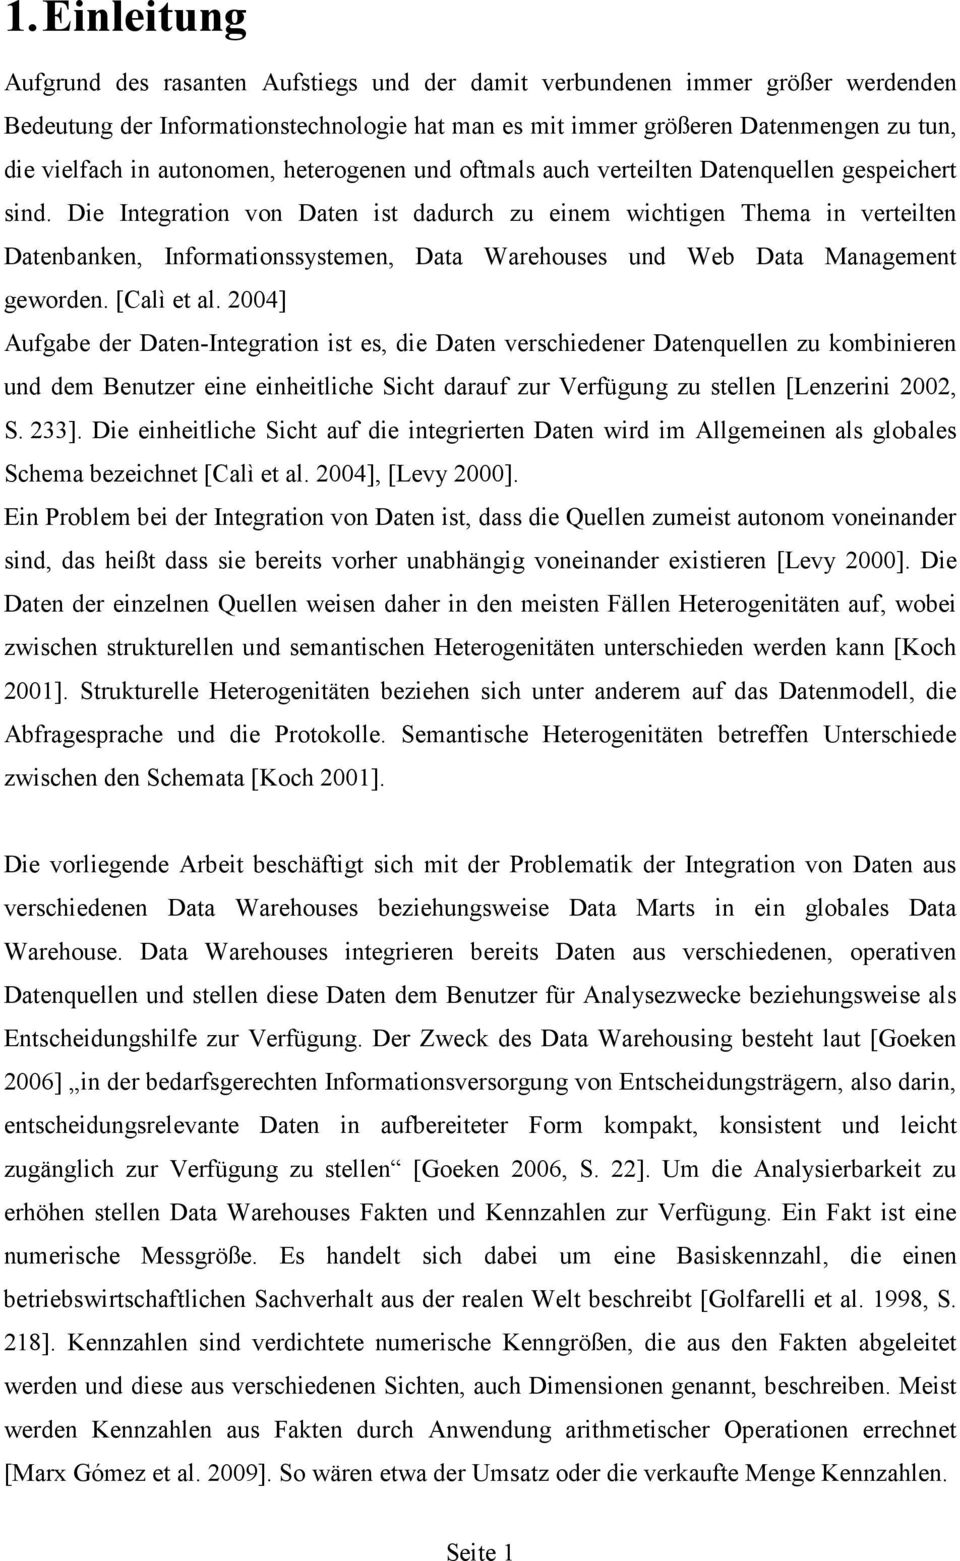 Die Integration von Daten ist dadurch zu einem wichtigen Thema in verteilten Datenbanken, Informationssystemen, Data Warehouses und Web Data Management geworden. [Calì et al.